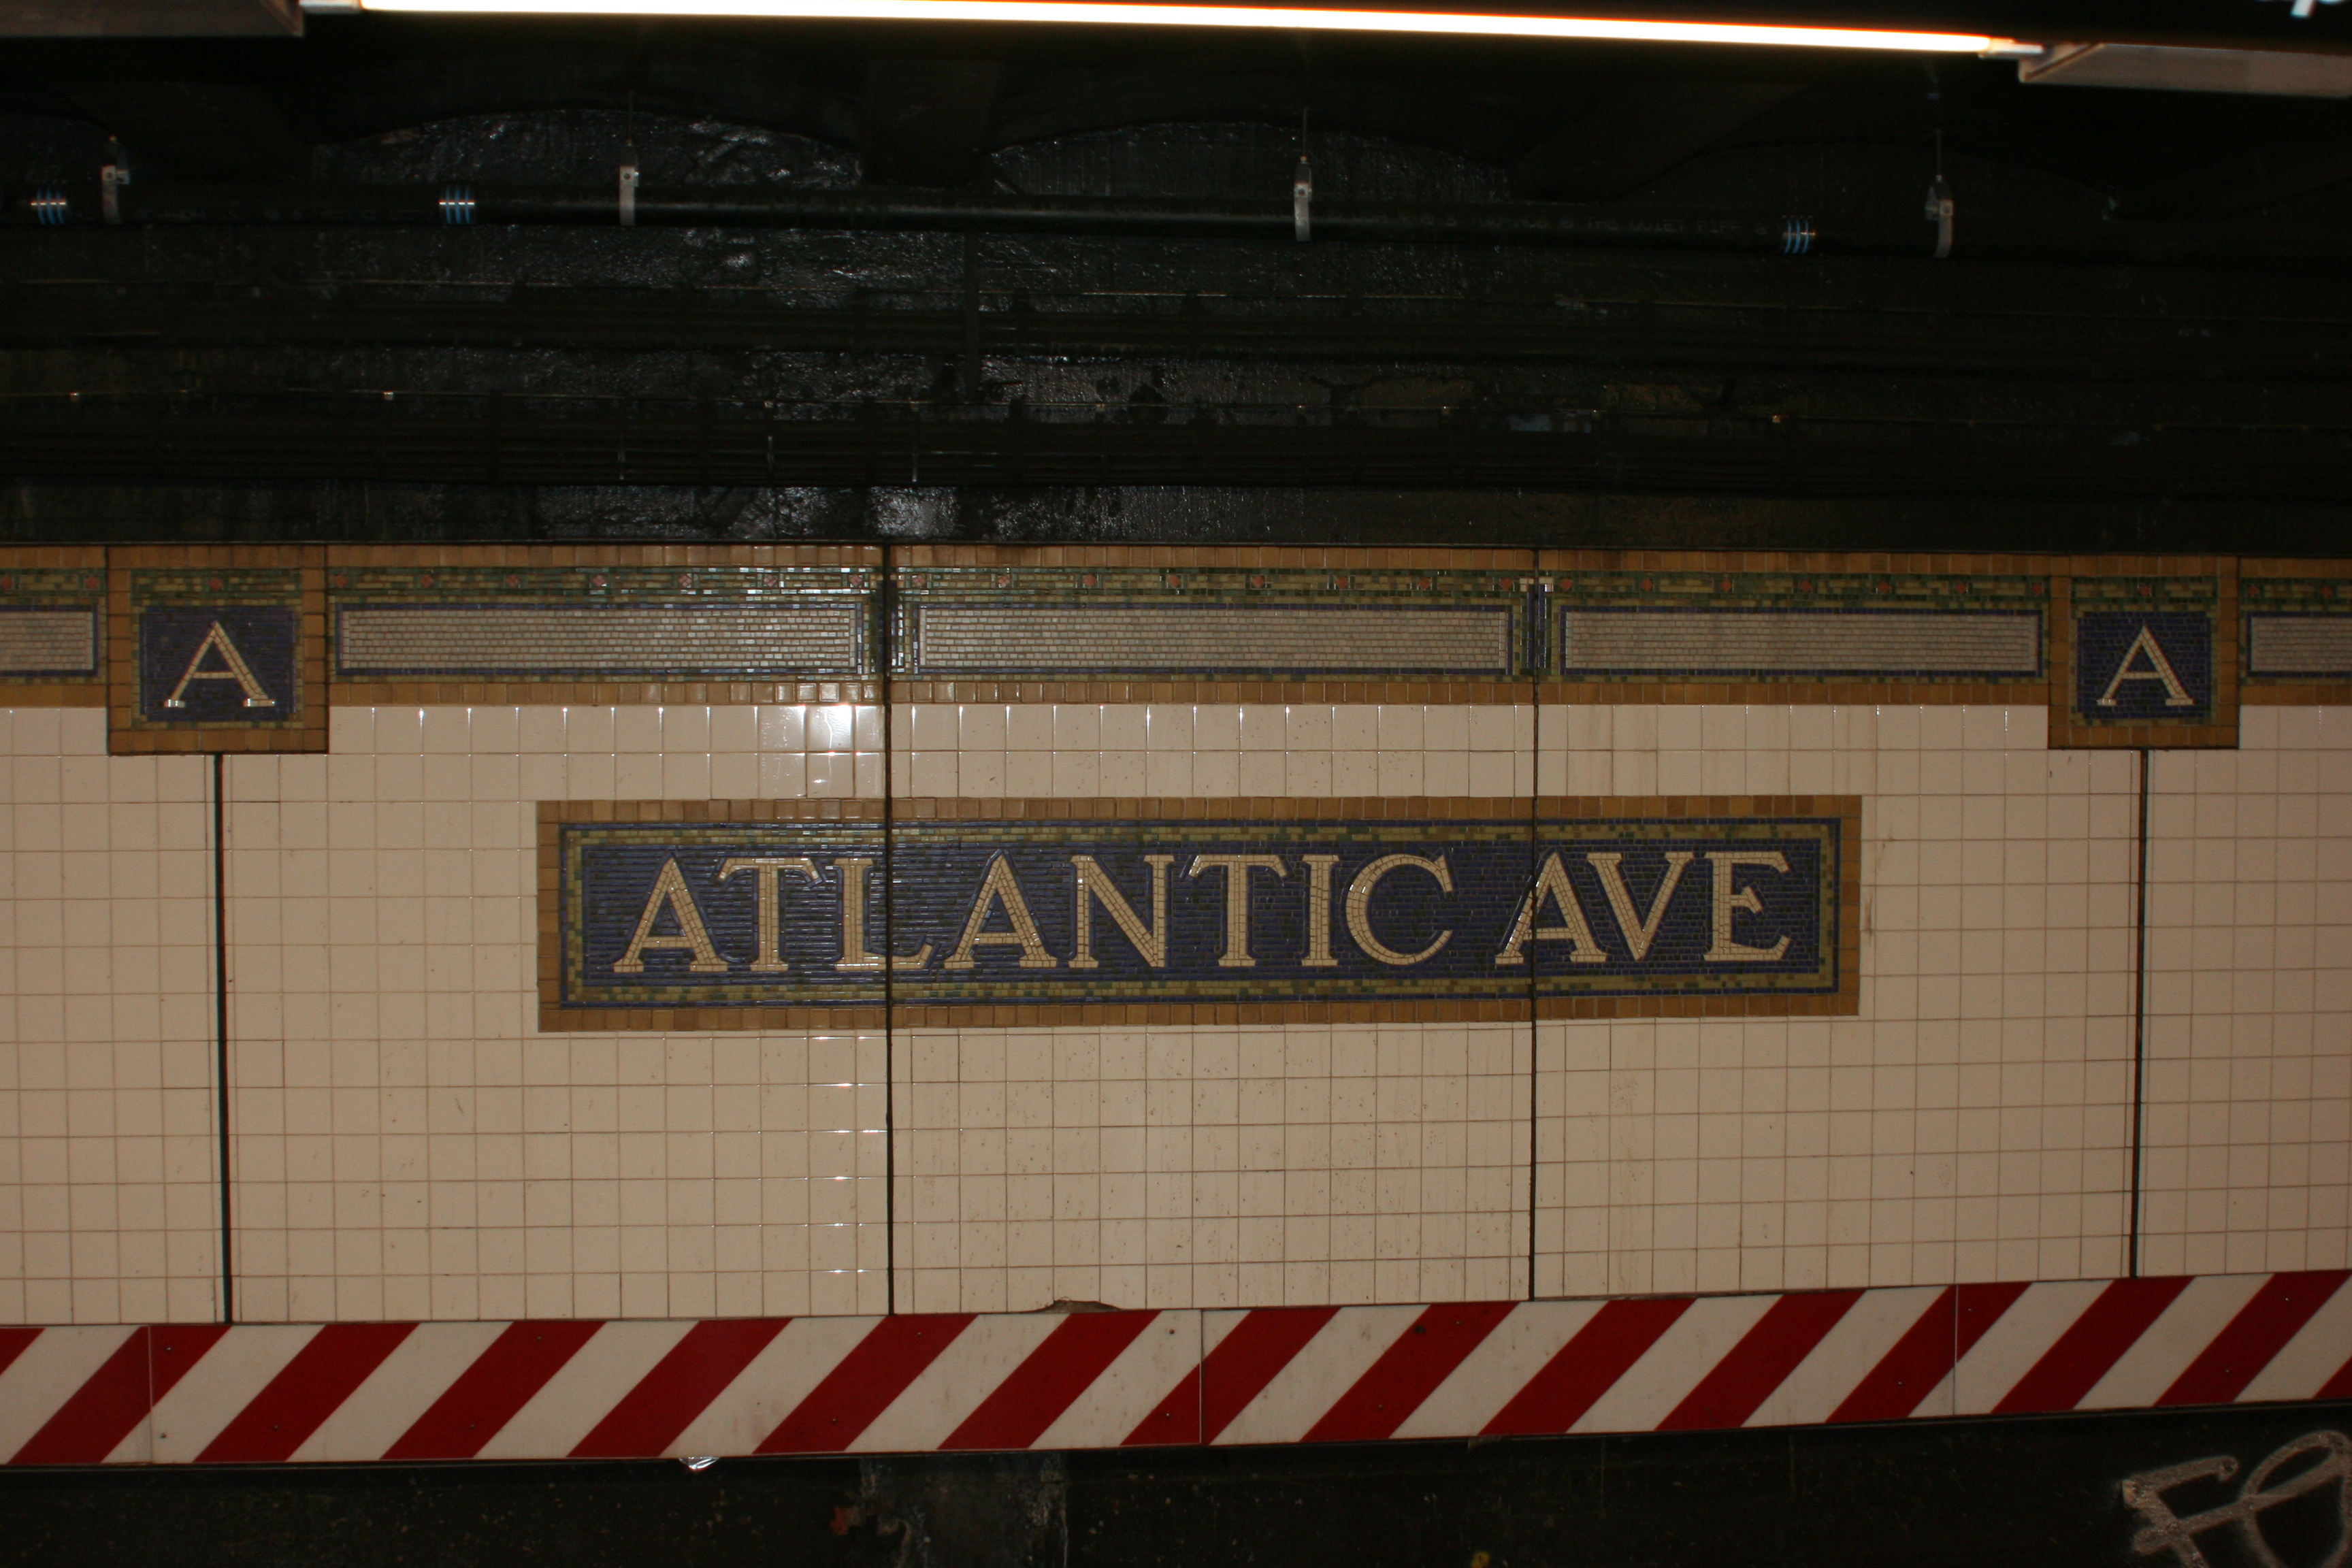 File:NYC Subway Atlantic Ave Station tile.jpg - Wikimedia Commons